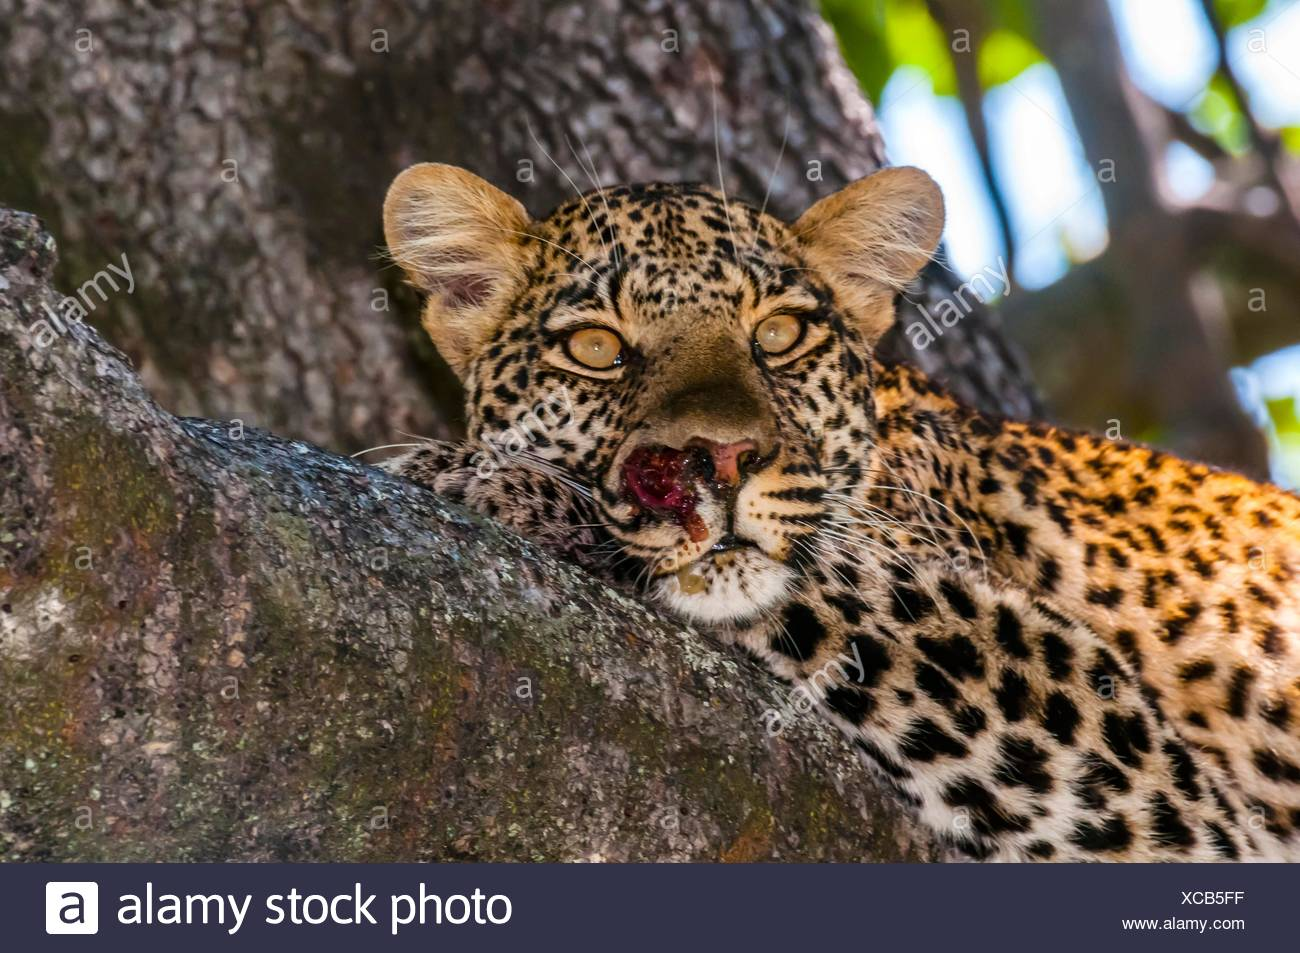 Leopard sitting in a tree, Kwando Concession, Linyanti Marshes, Botswana. Stock Photo